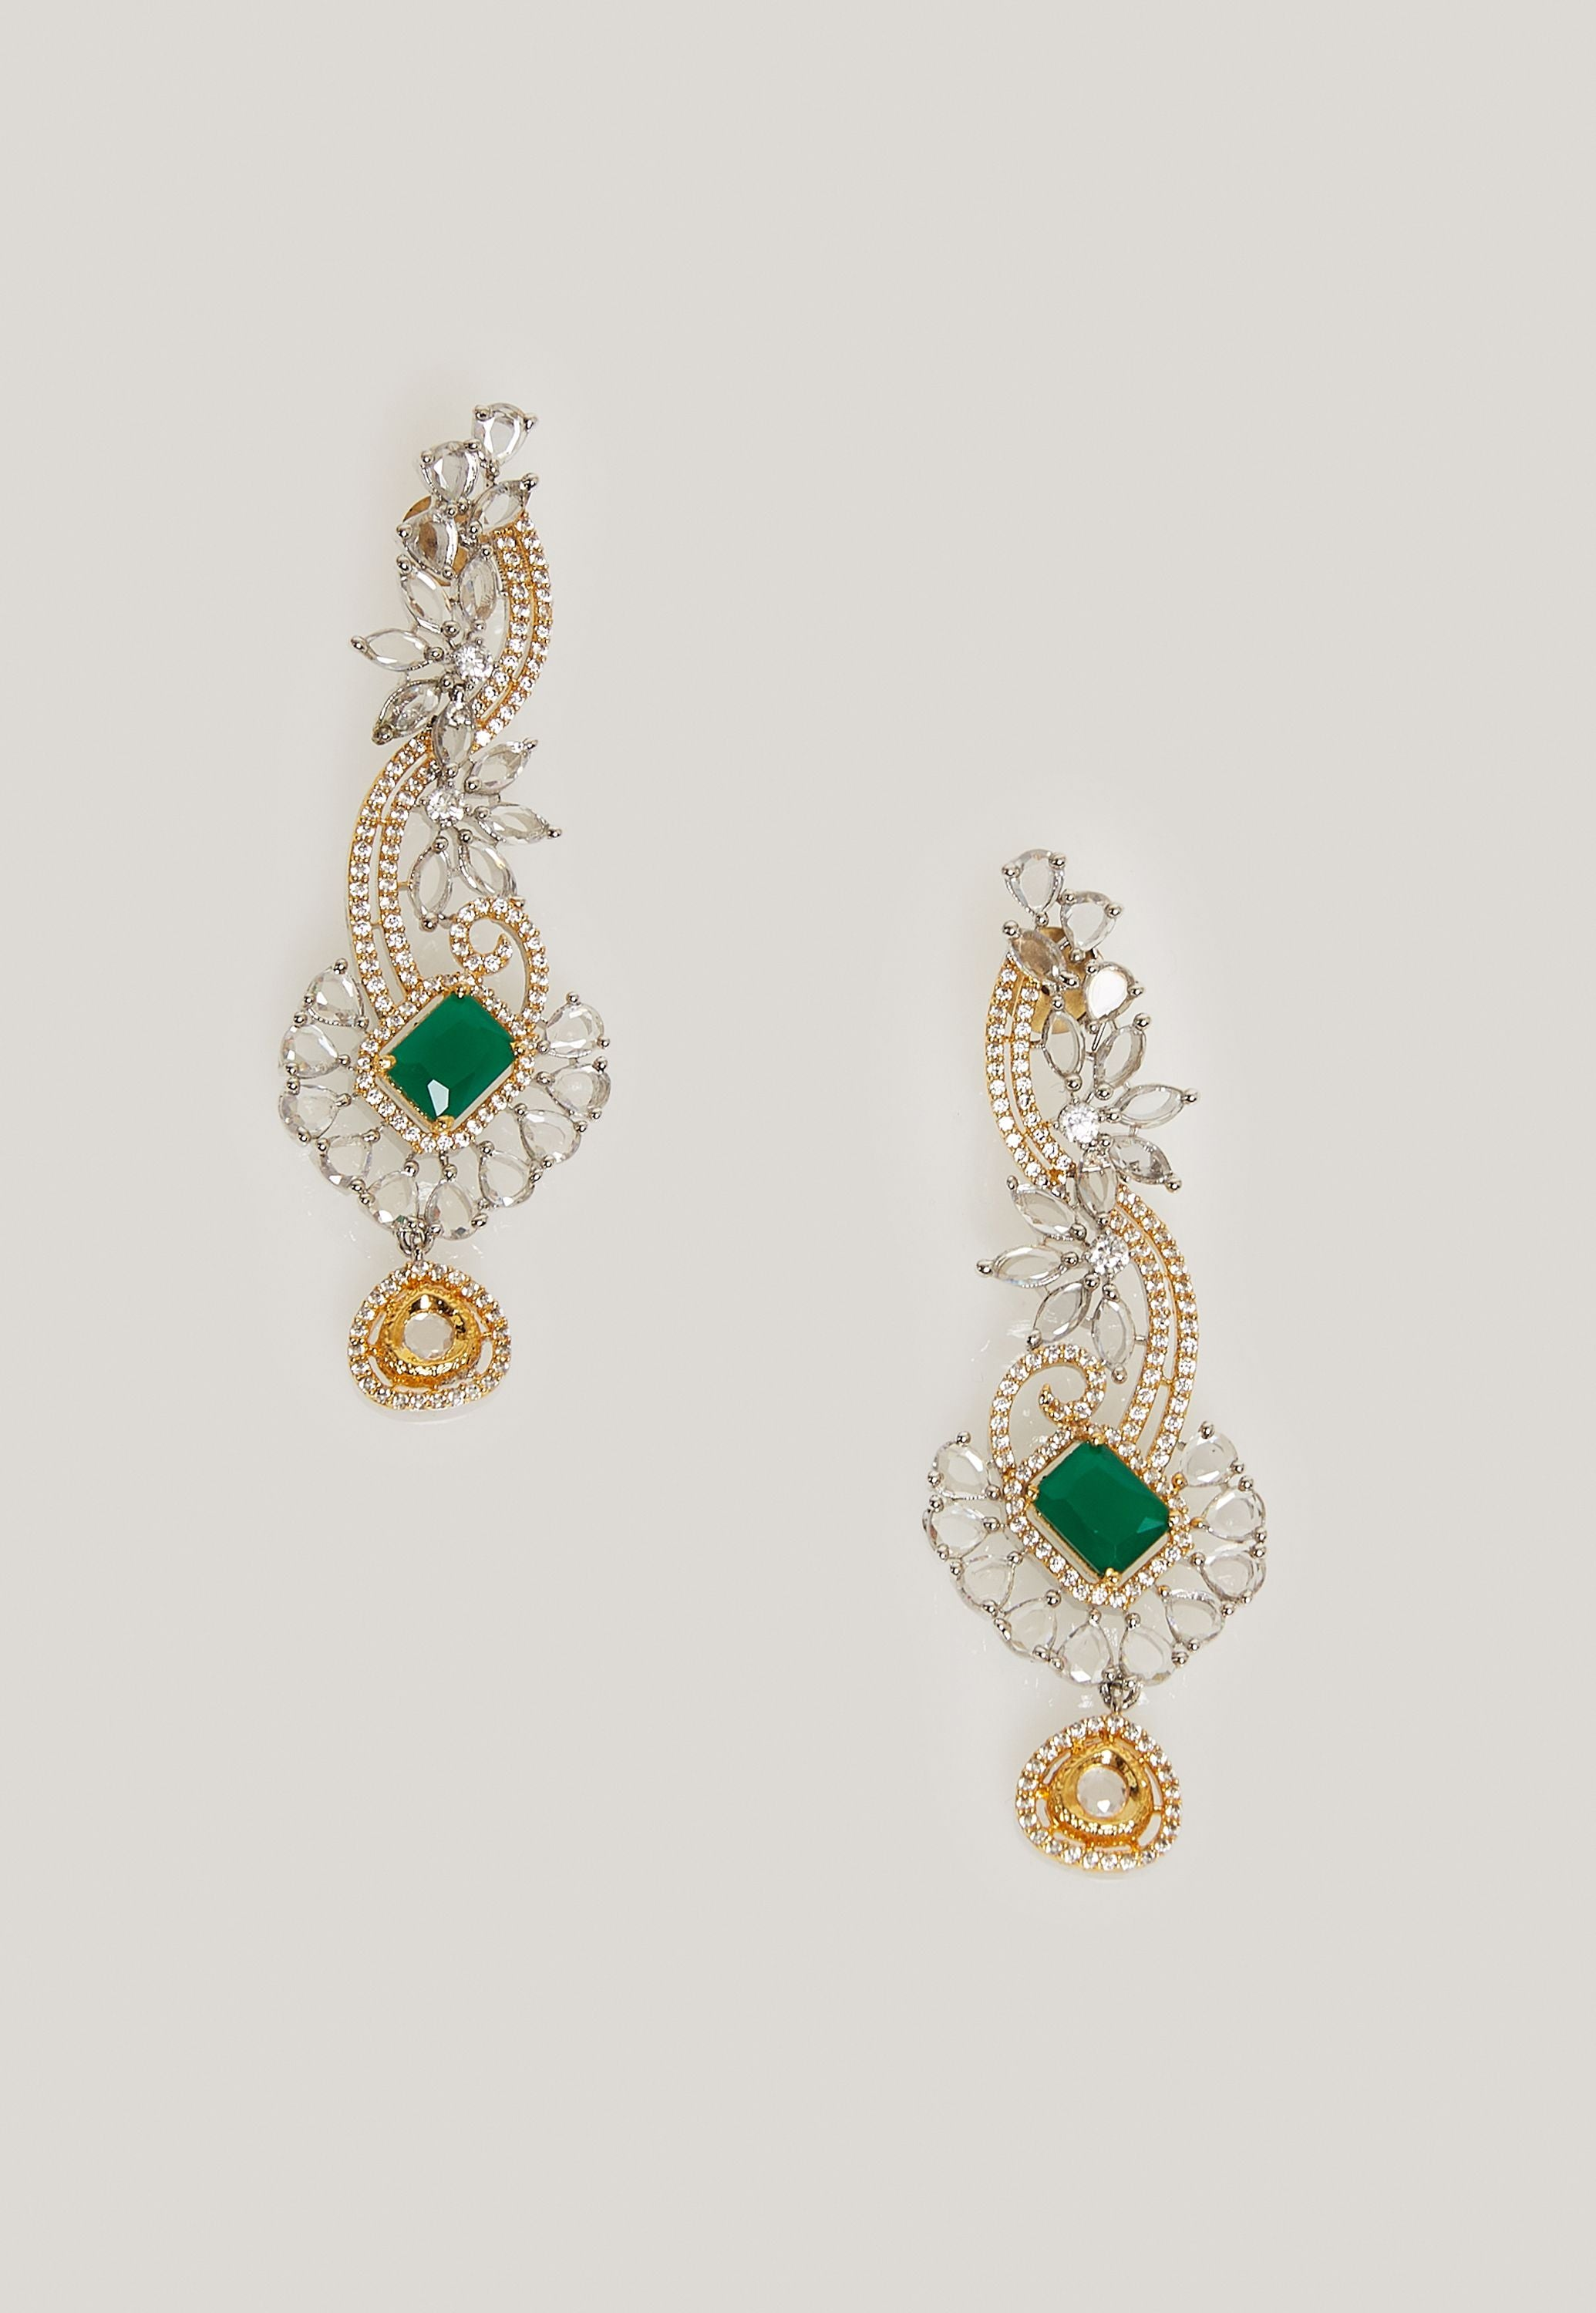 TINTED TEAL - CUBIC ZIRCONIA, SIMULATED EMERALDS WITH PEARL EARRINGS